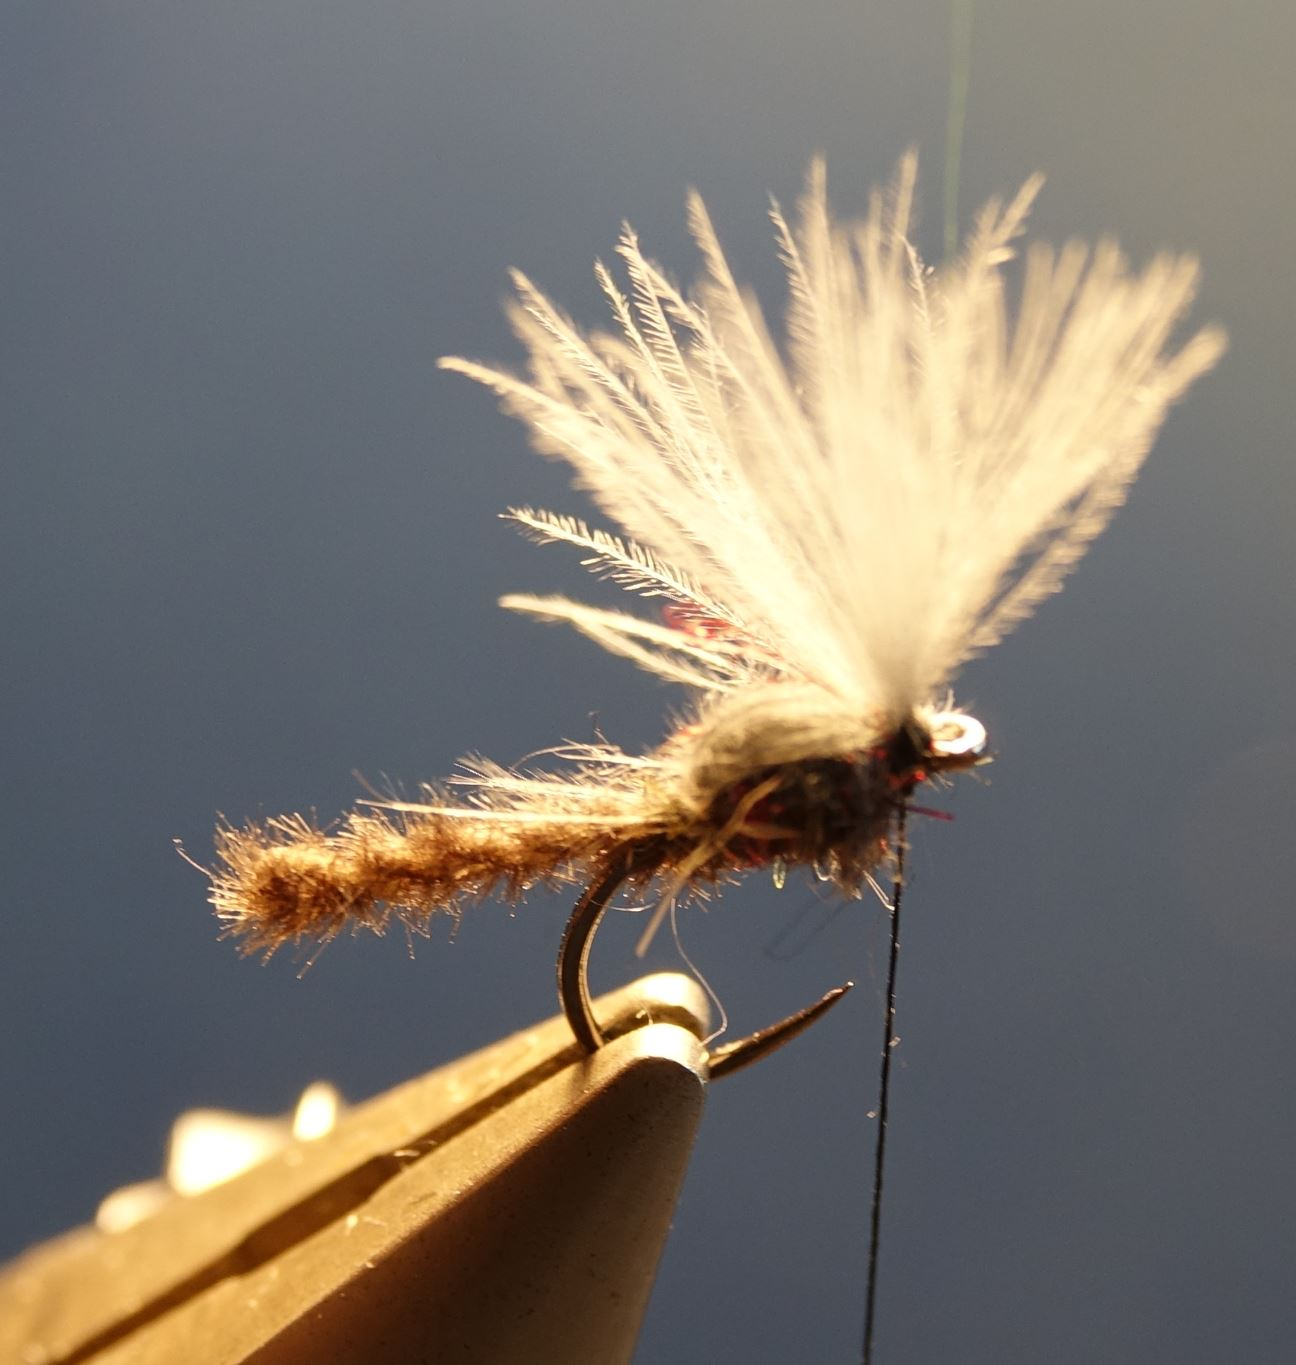 Chironome microchenille CDC dubbing mouche fly tying eclosion tip